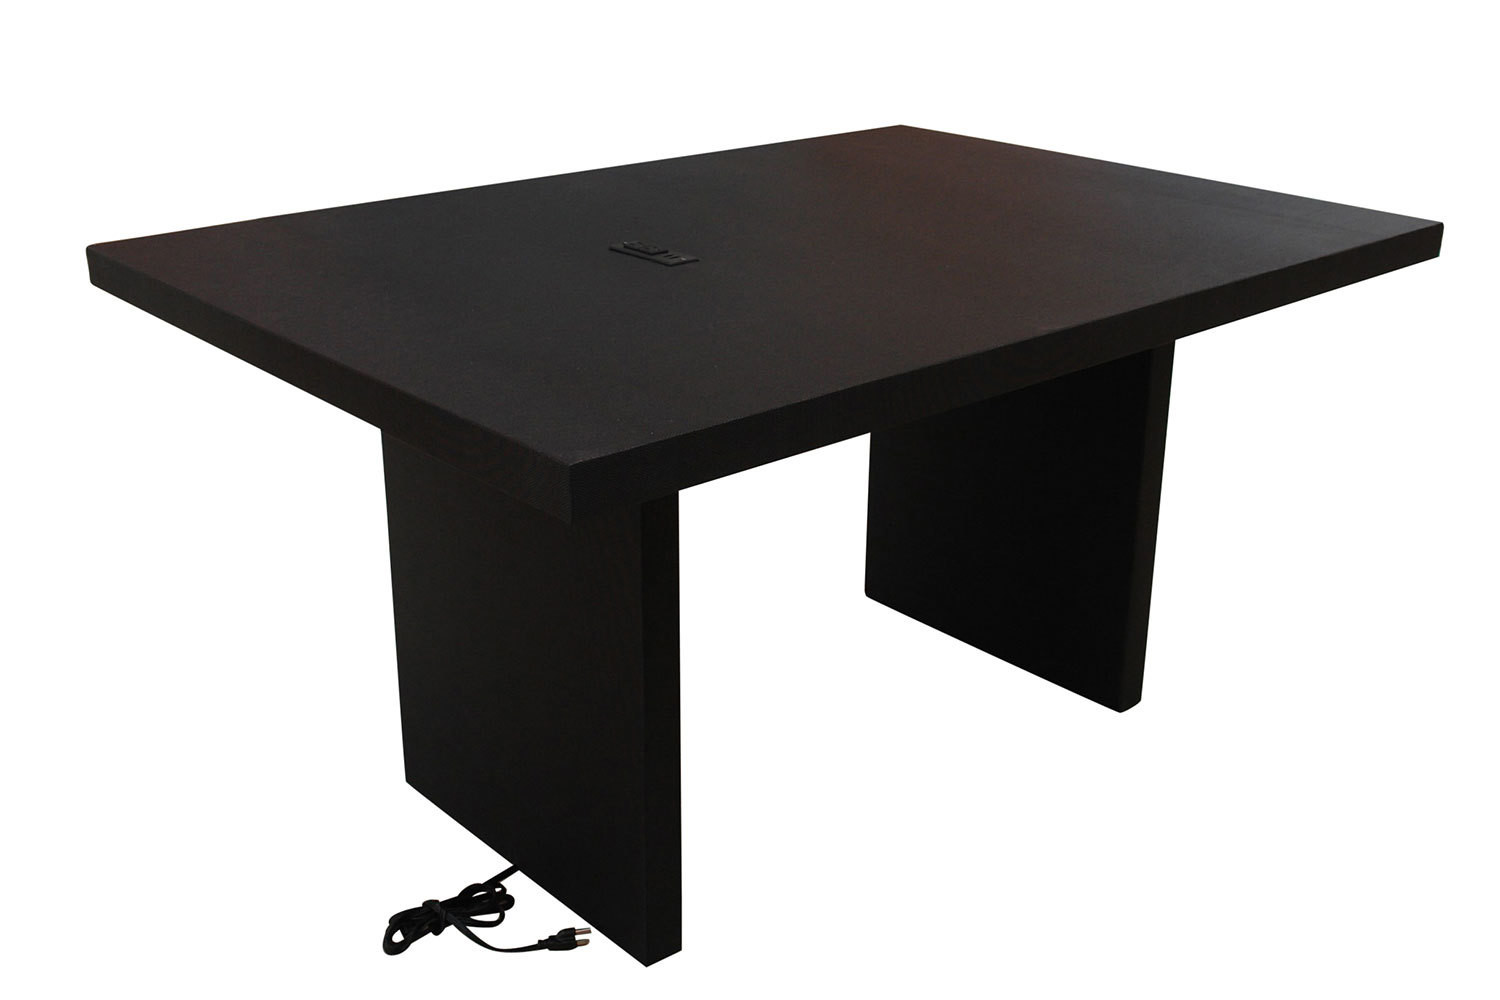 5' Black Charging Conference Table